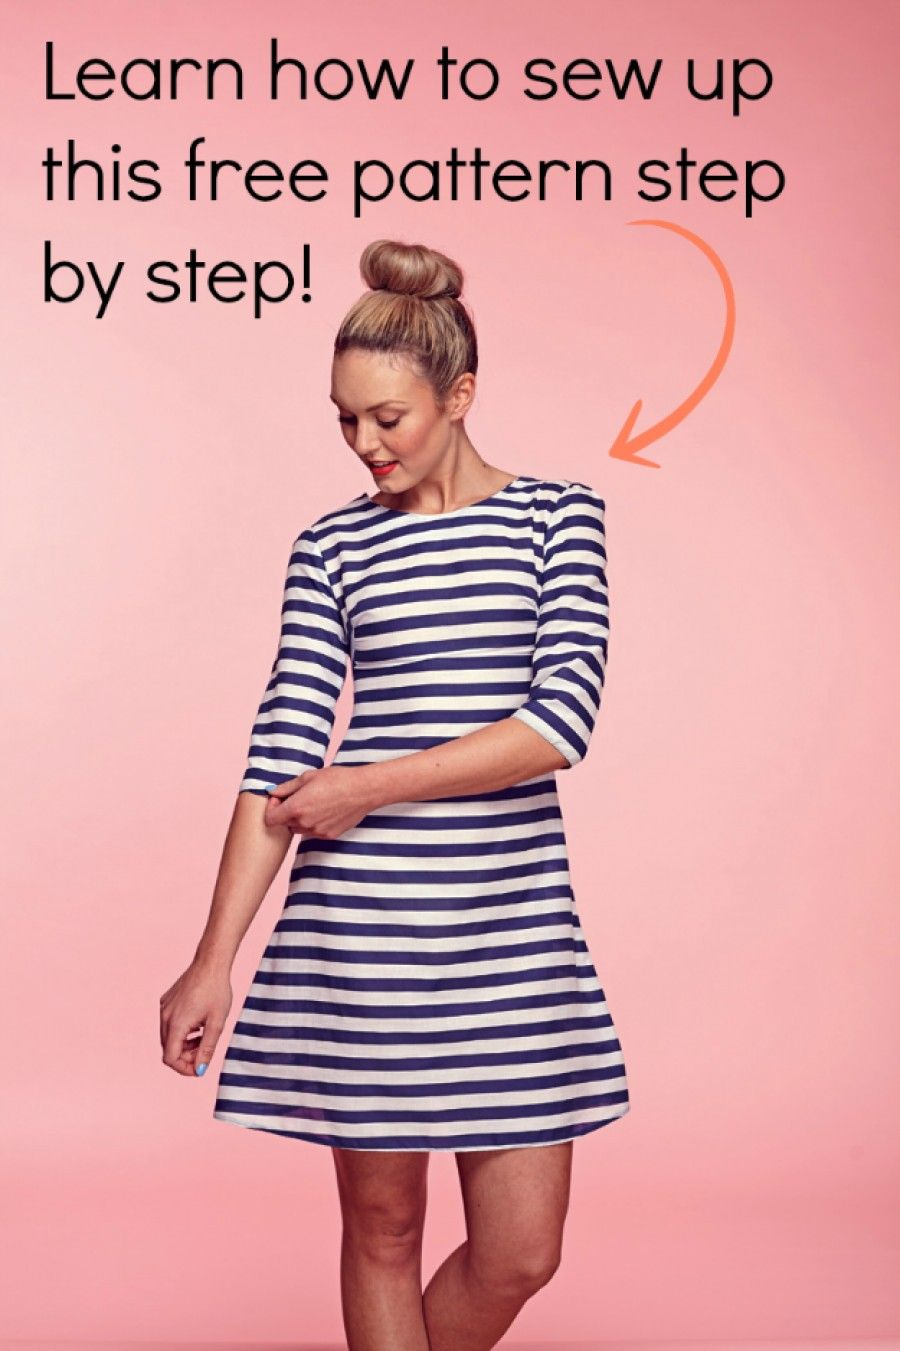 Brigitte dress sewalong diy clothes pinterest free never say no to a free dress pattern and this one even comes with a sew along brigitte dress free pattern instructions jeuxipadfo Choice Image